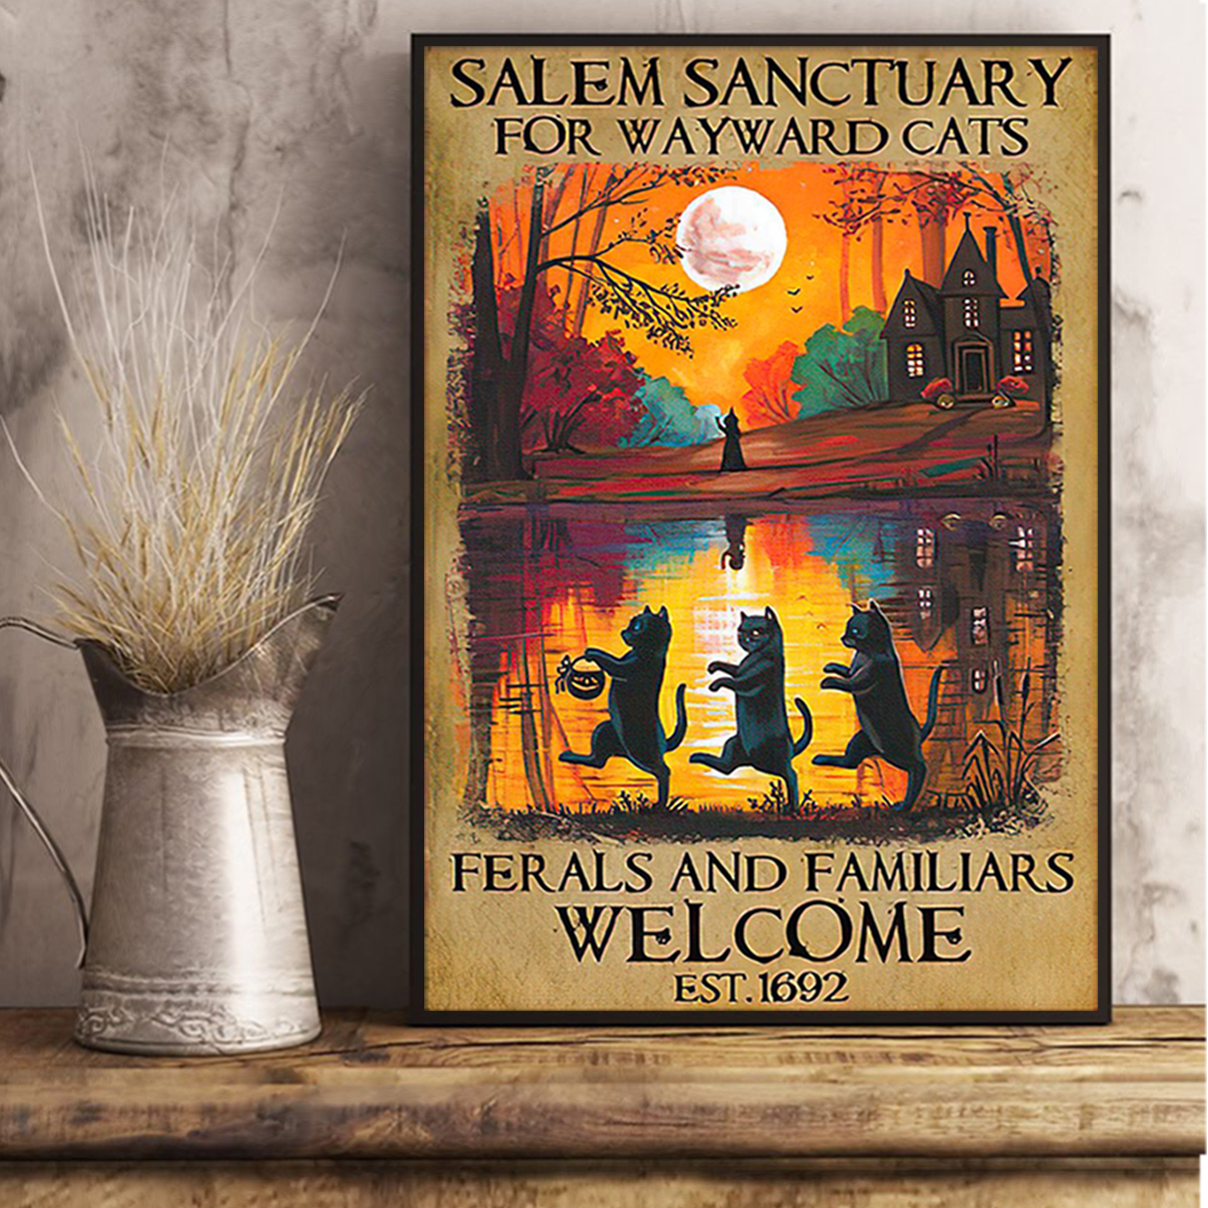 Halloween salem sanctuary for wayward cats ferals and familiars welcome poster A2